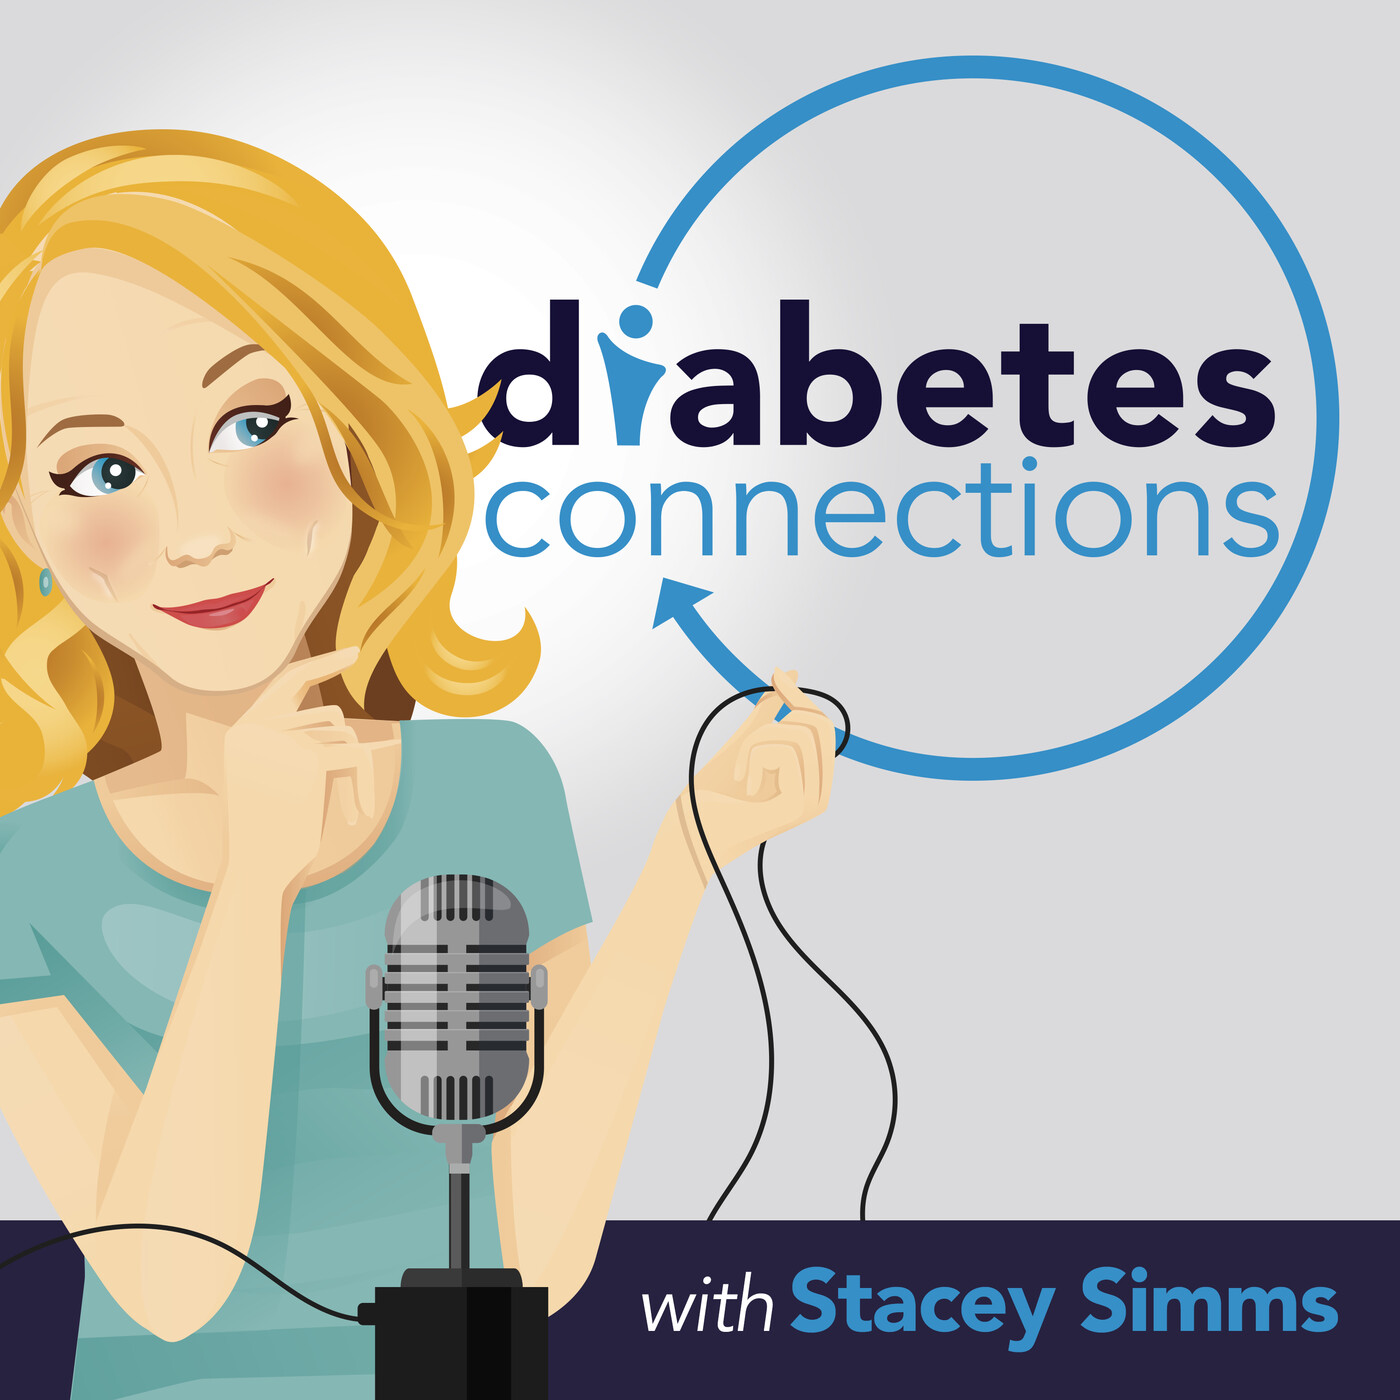 Ask The D-Moms: Finding Reliable Diabetes News Sources